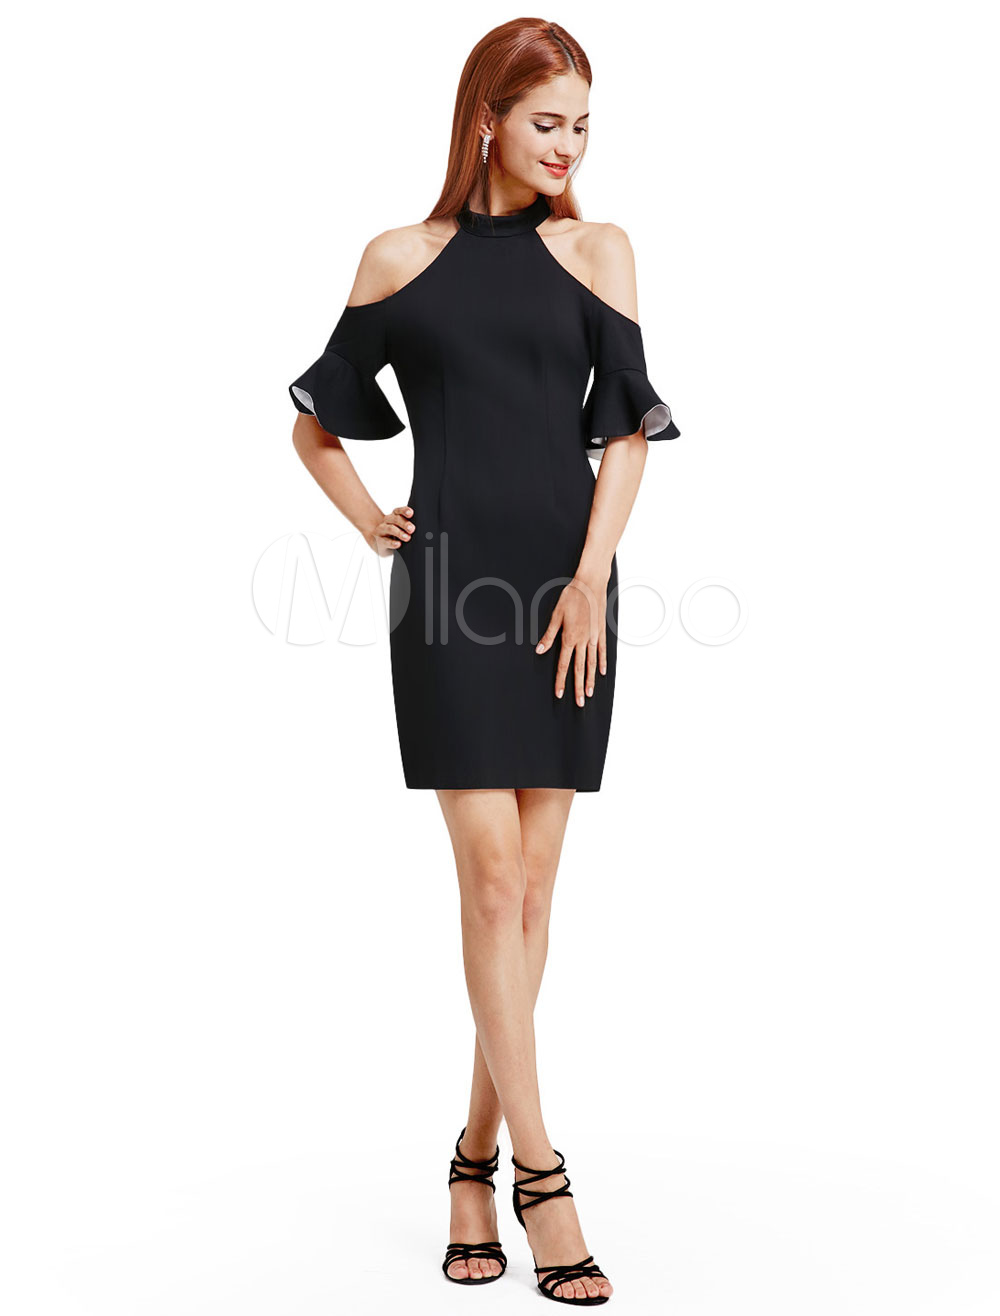 Buy Little Black Dresses Short Halter Cold Shoulder Sheath Bell Sleeve Mini Cocktail Party Dresses for $87.99 in Milanoo store